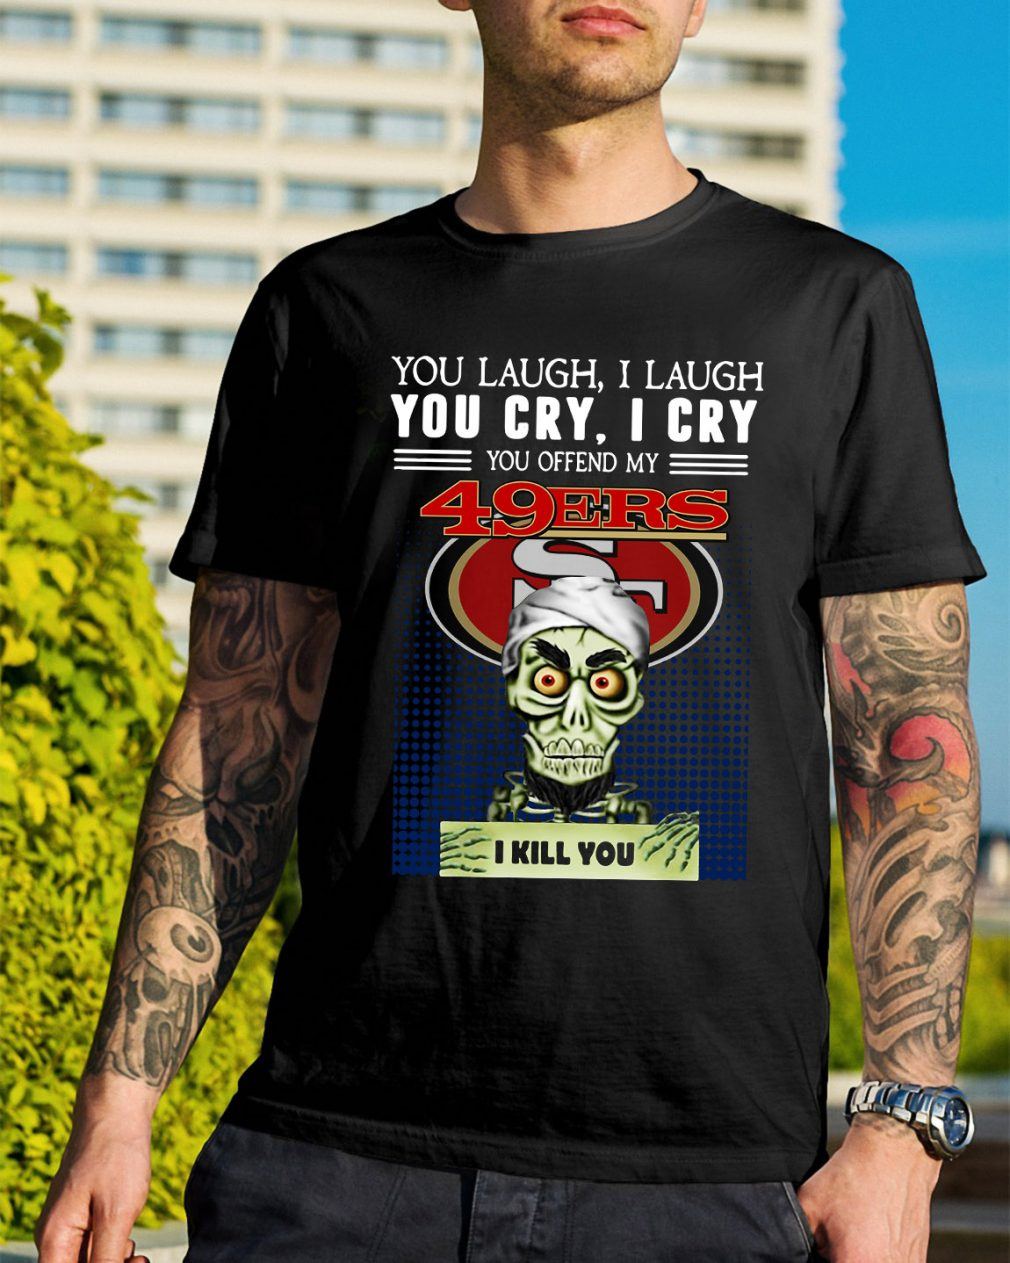 You laugh I laugh you cry I cry you offend my 49ers I kill you shirt